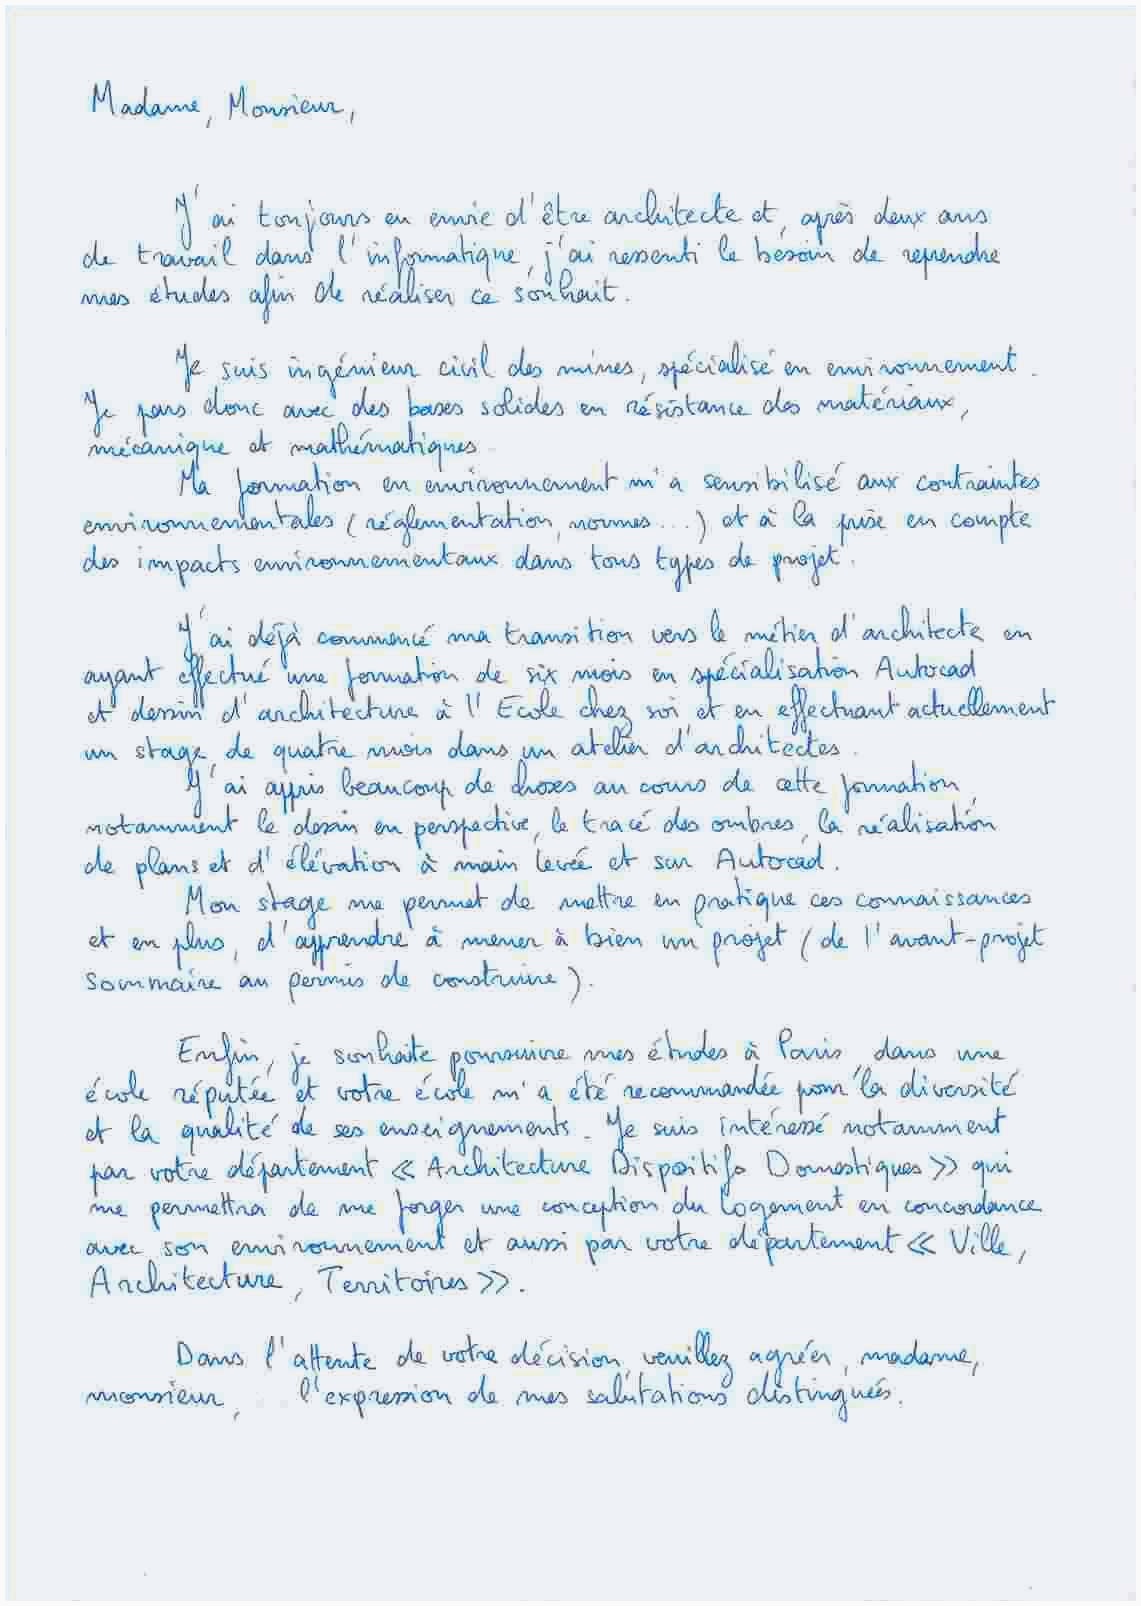 Lettre Motivation Restauration Impressionnant Lettre Motivation Ecole Maternelle Luxury Exemple